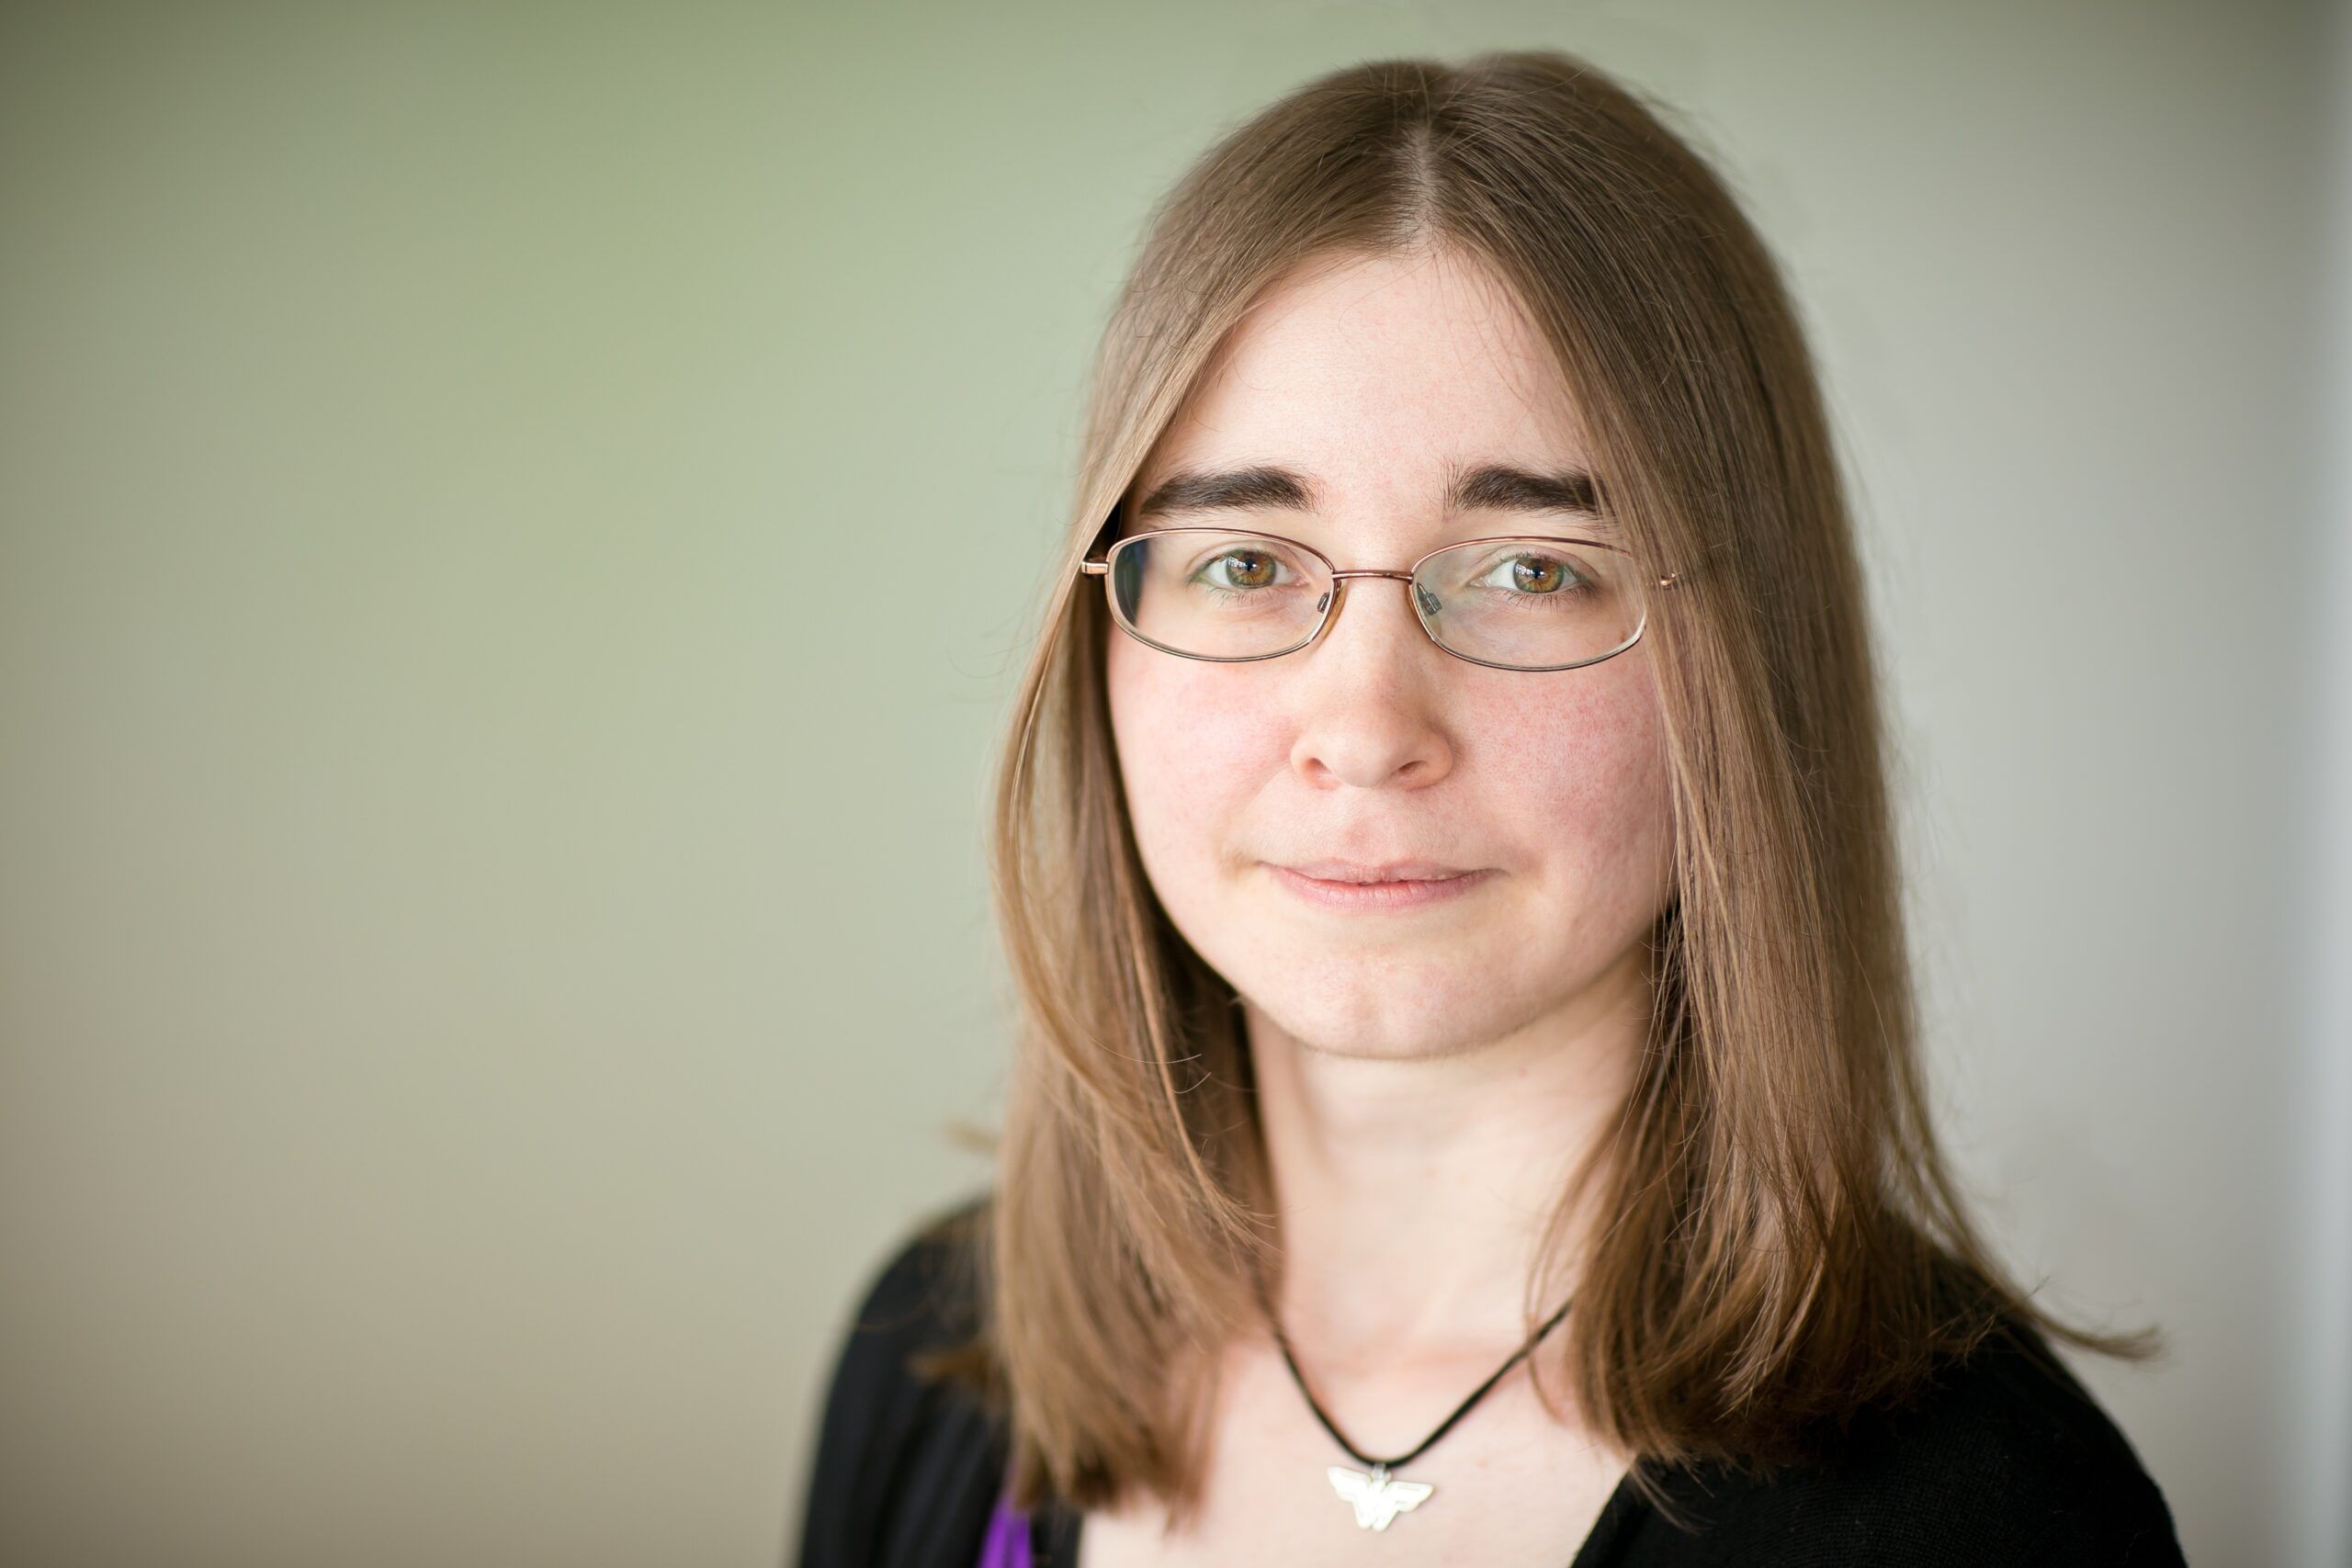 Headshot of young woman with shoulder-length hair and glasses